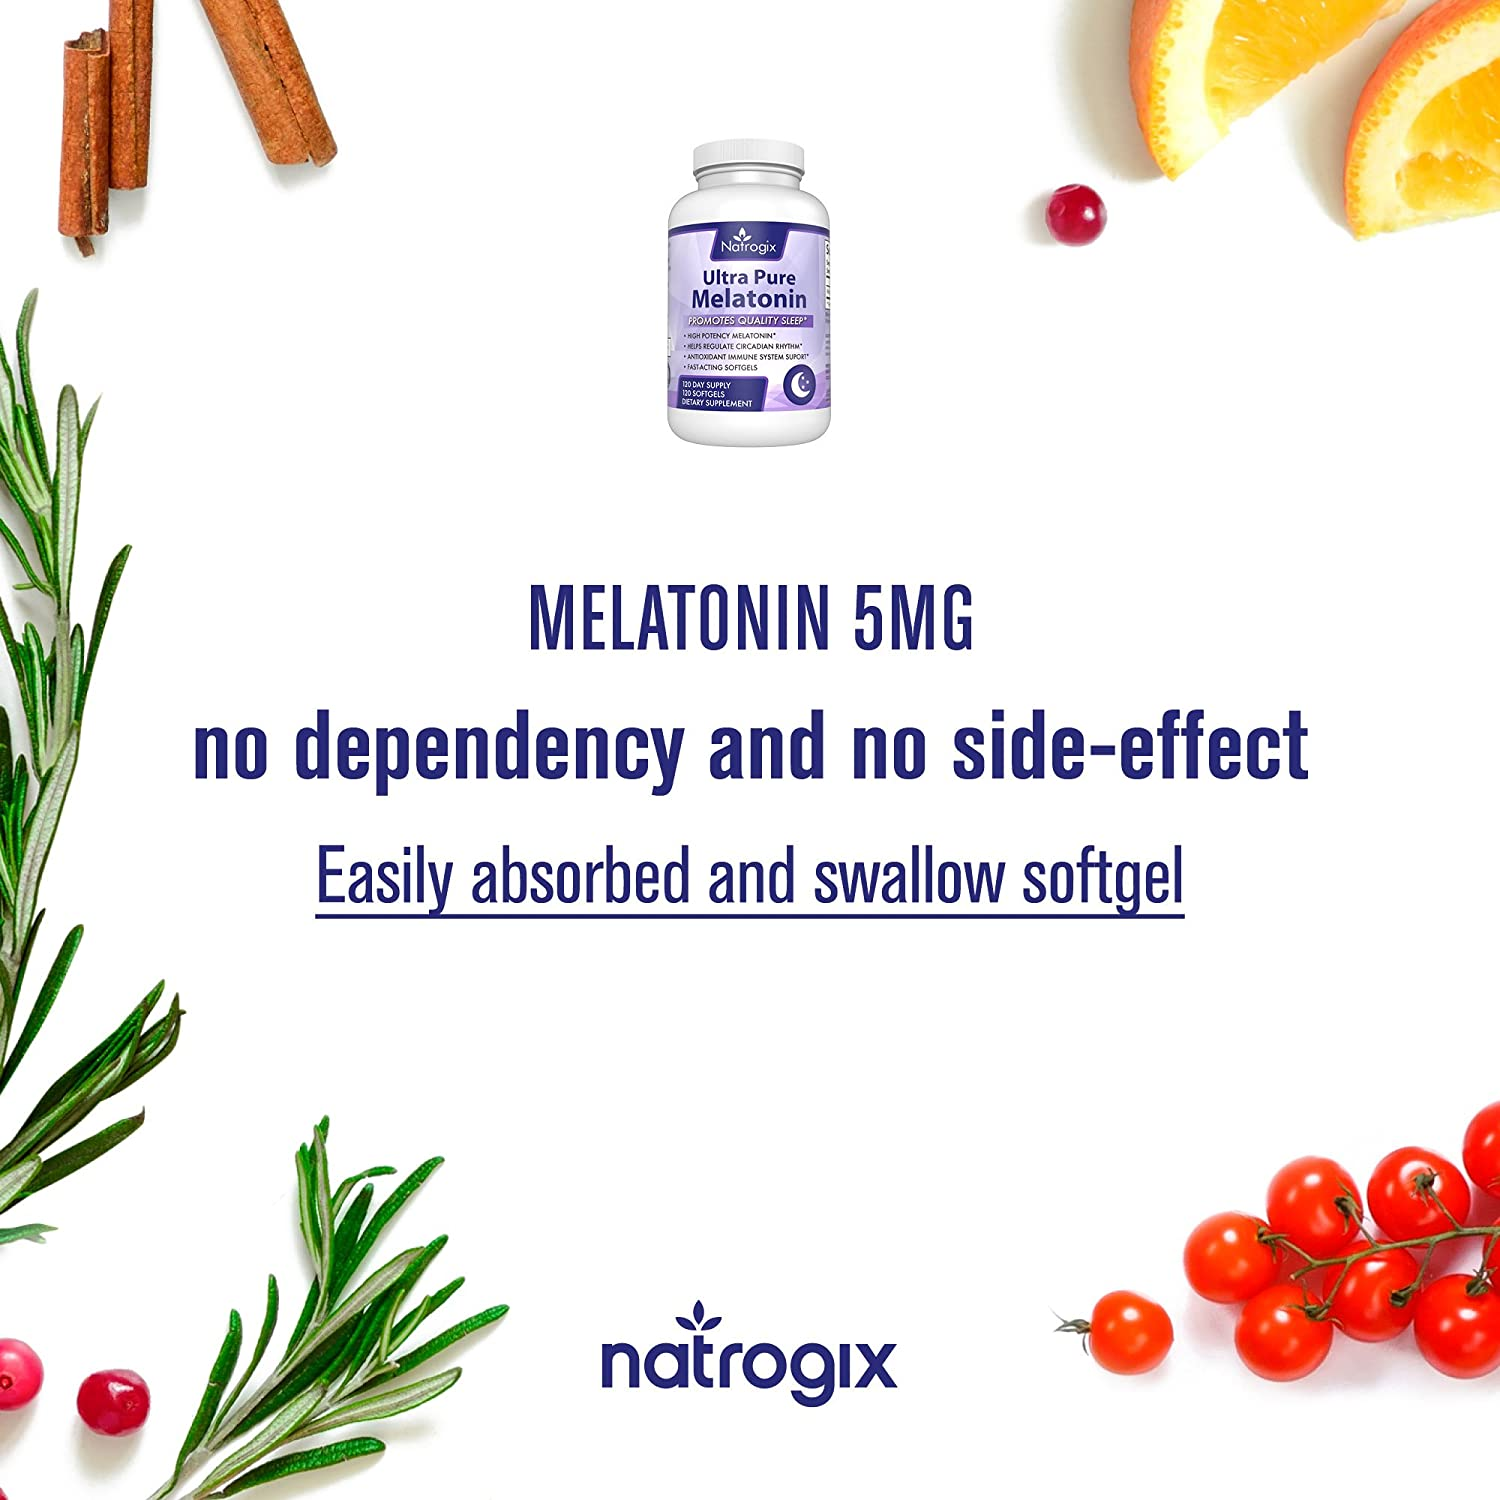 Amazon.com: Natural Ultra Pure Melatonin 5mg (120 Softgels*3 Bottles) Easily Absorbed Supplement to Promote Sleep - Share With Your Family and Friends: ...